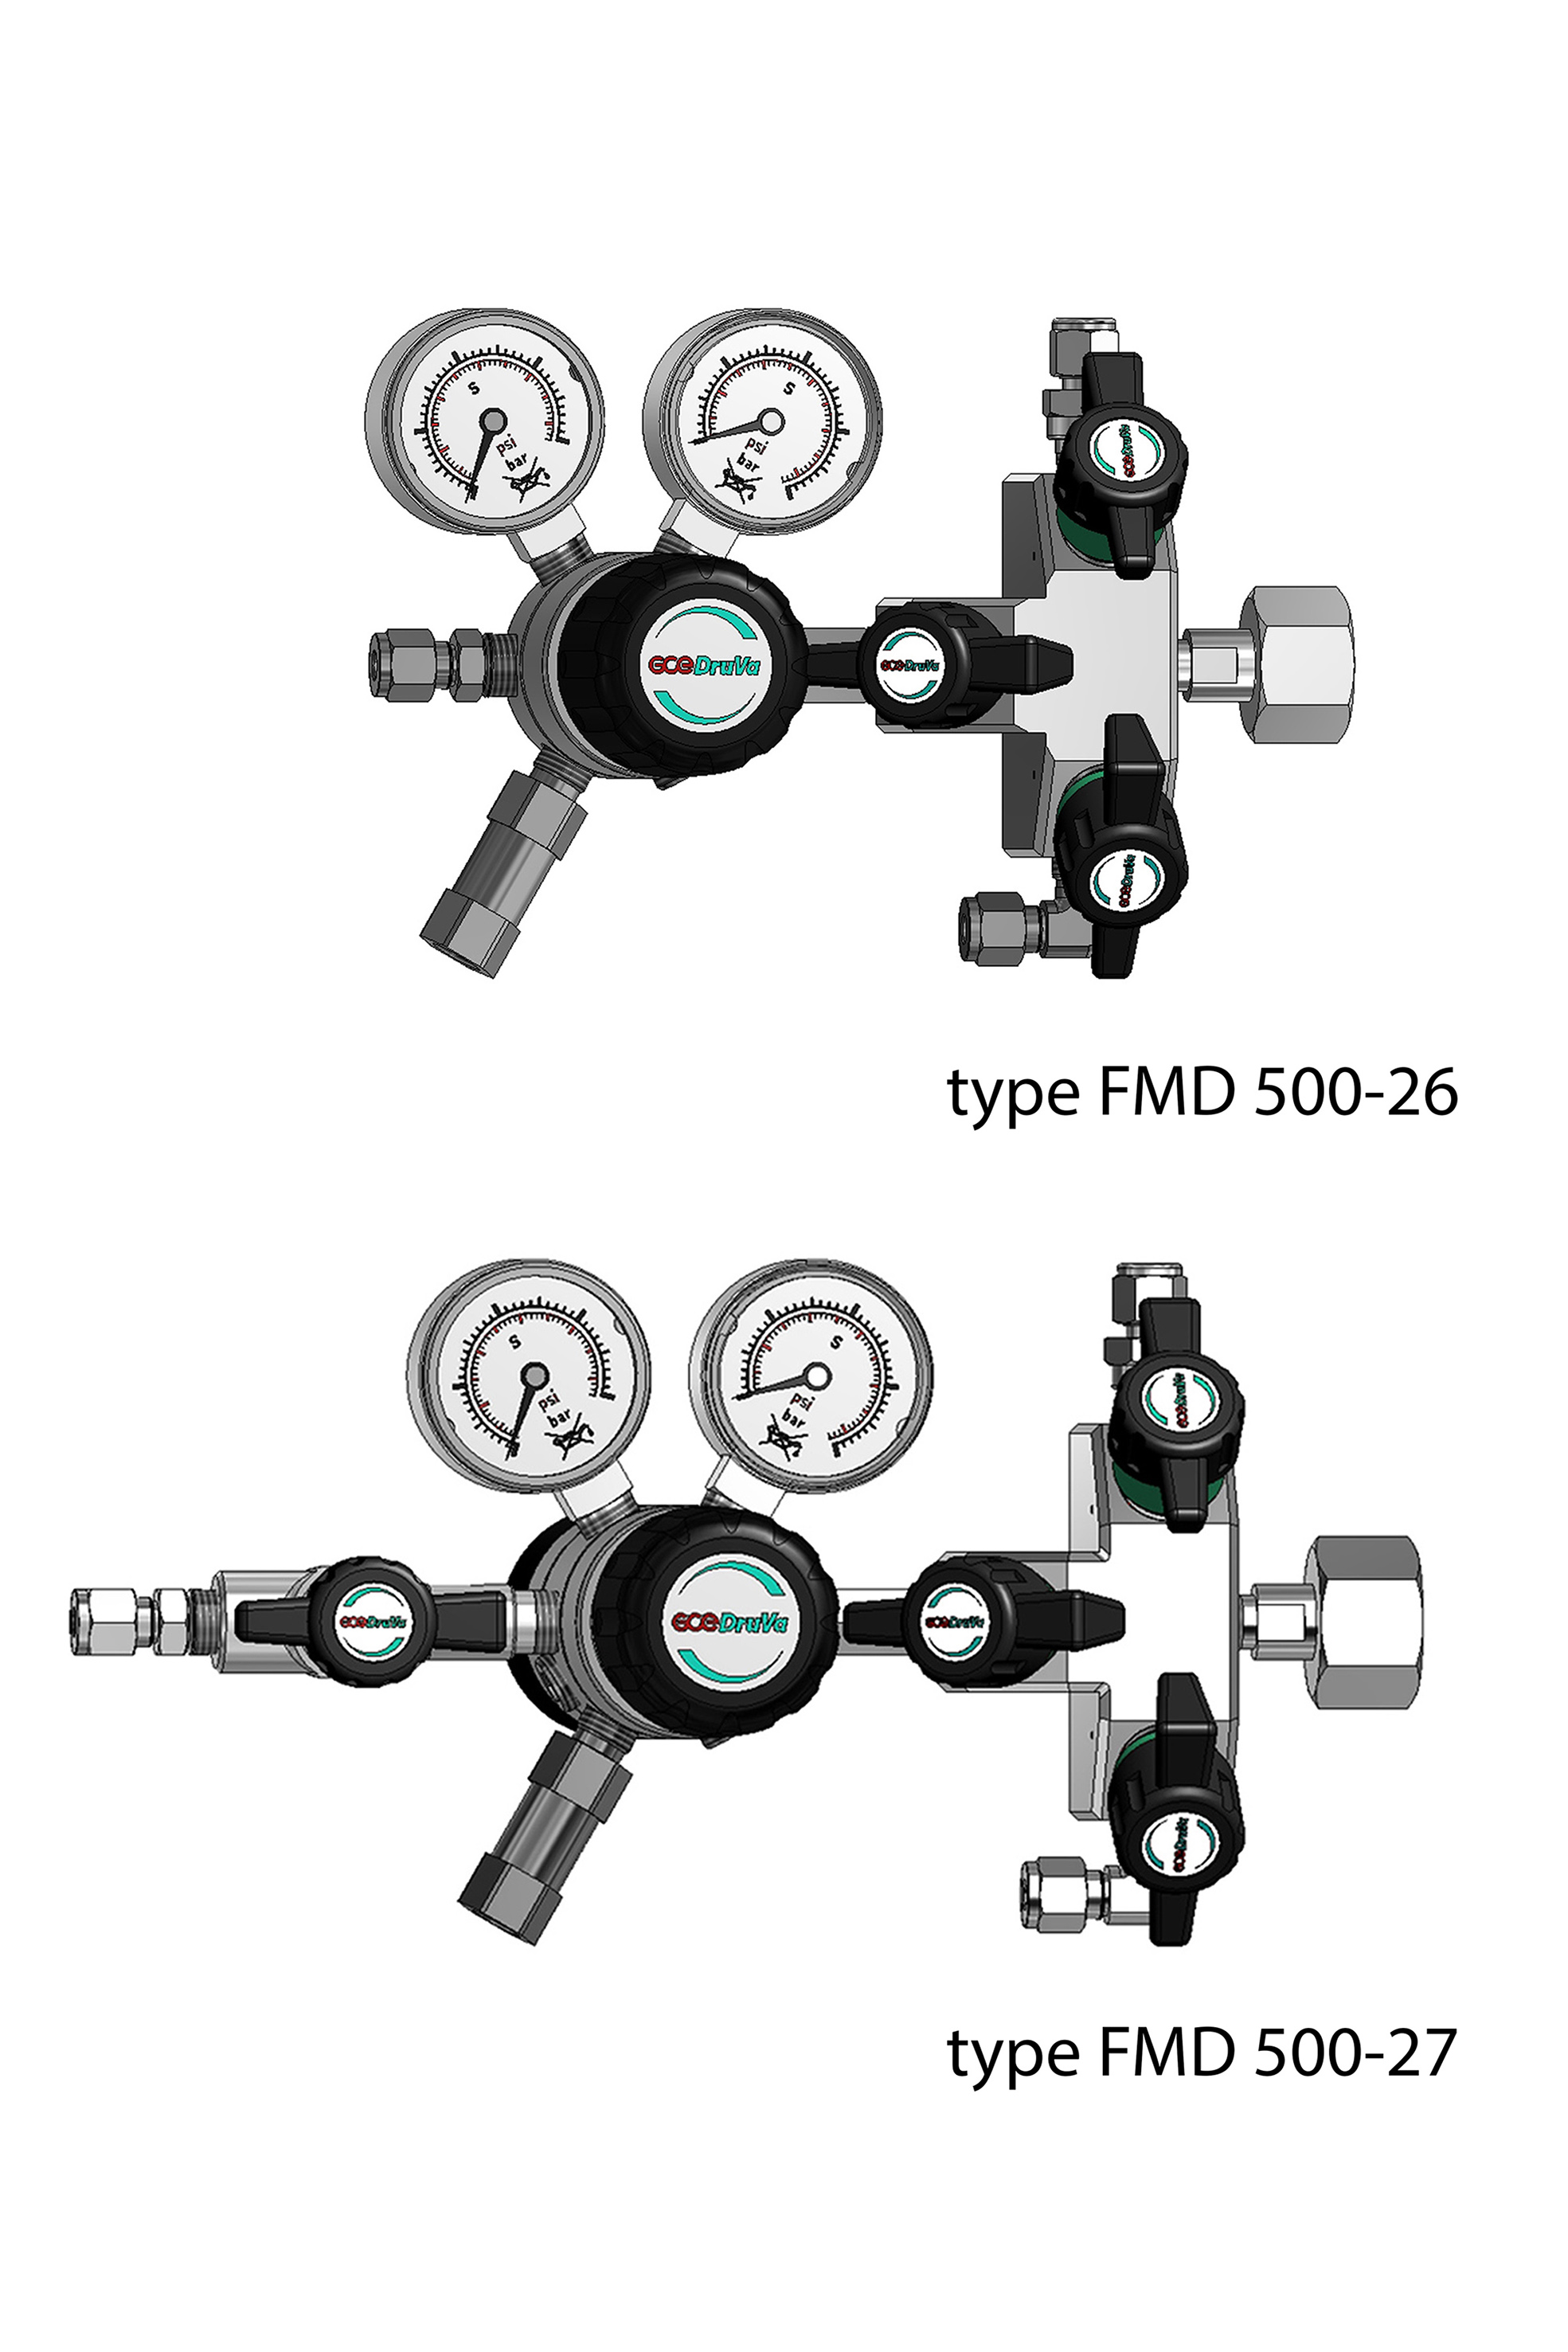 FMD 500 1-STAGE REGULATOR INERT PURGING page image